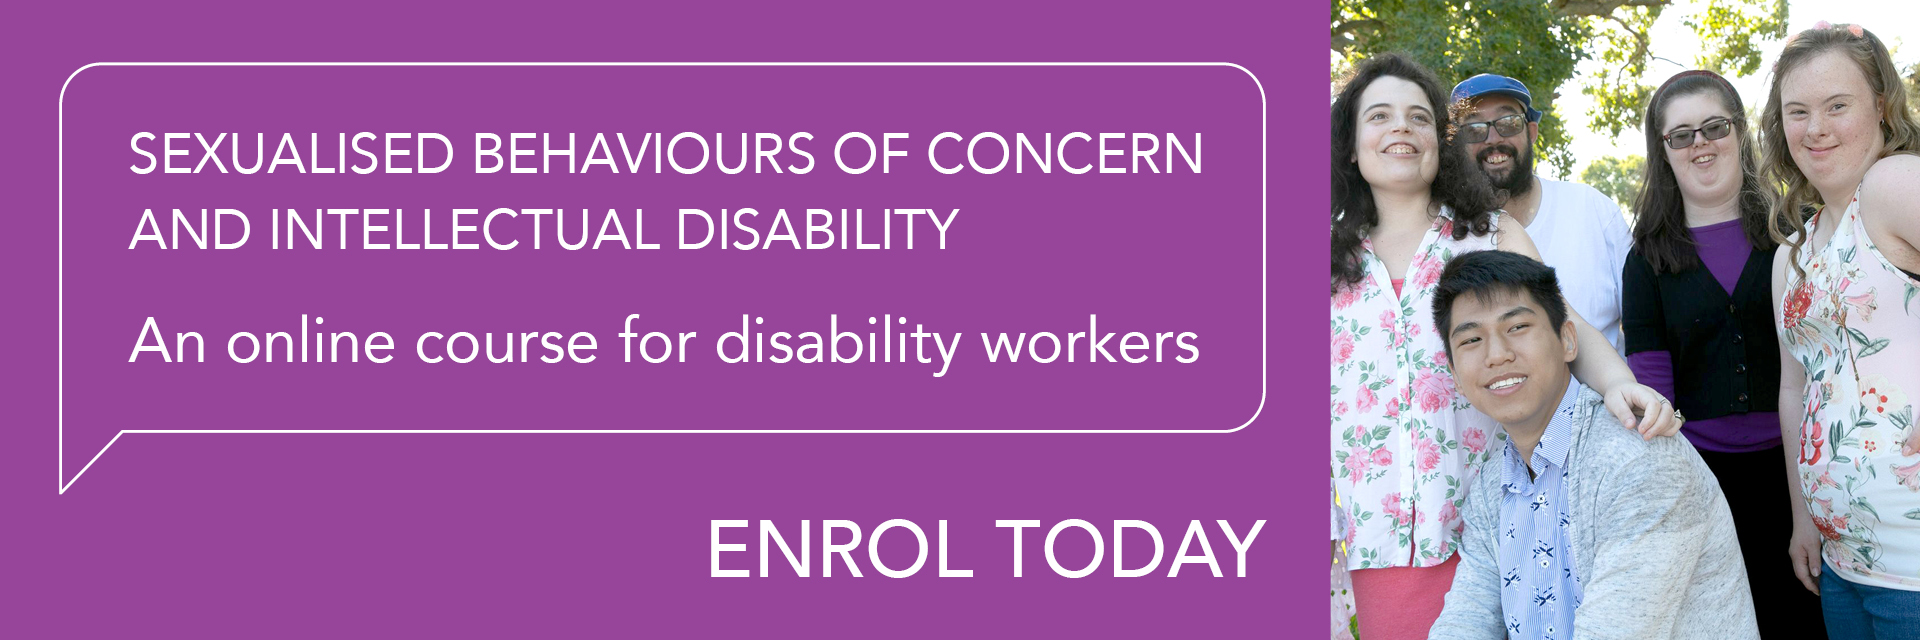 Family Planning NSW has a new online course for disability workers called 'Sexualised Behaviours of Concern and Intellectual Disability'.